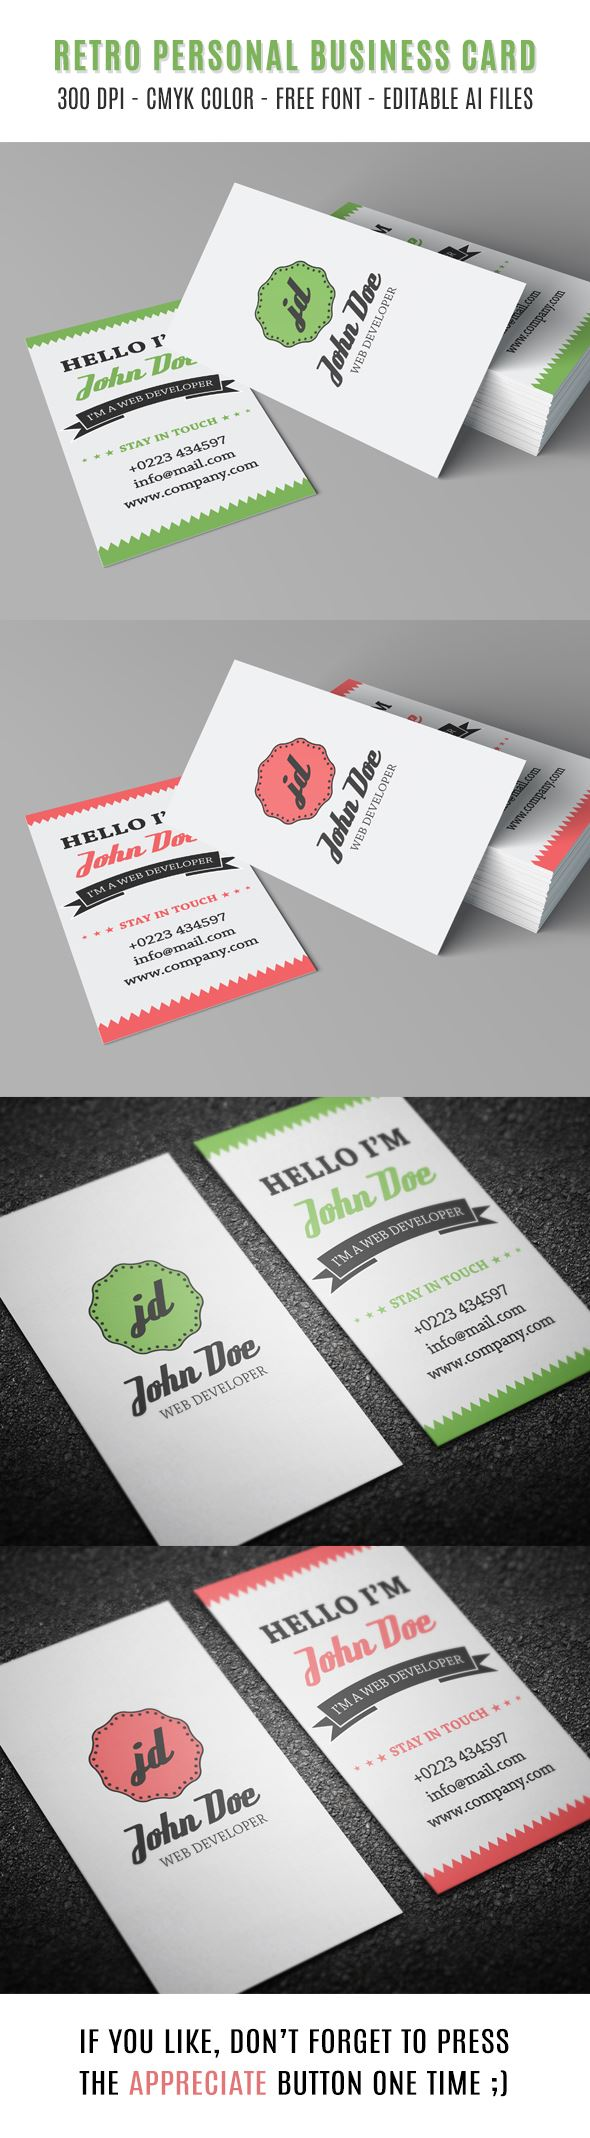 20 Free Printable Templates For Business Cards Card Pinterest